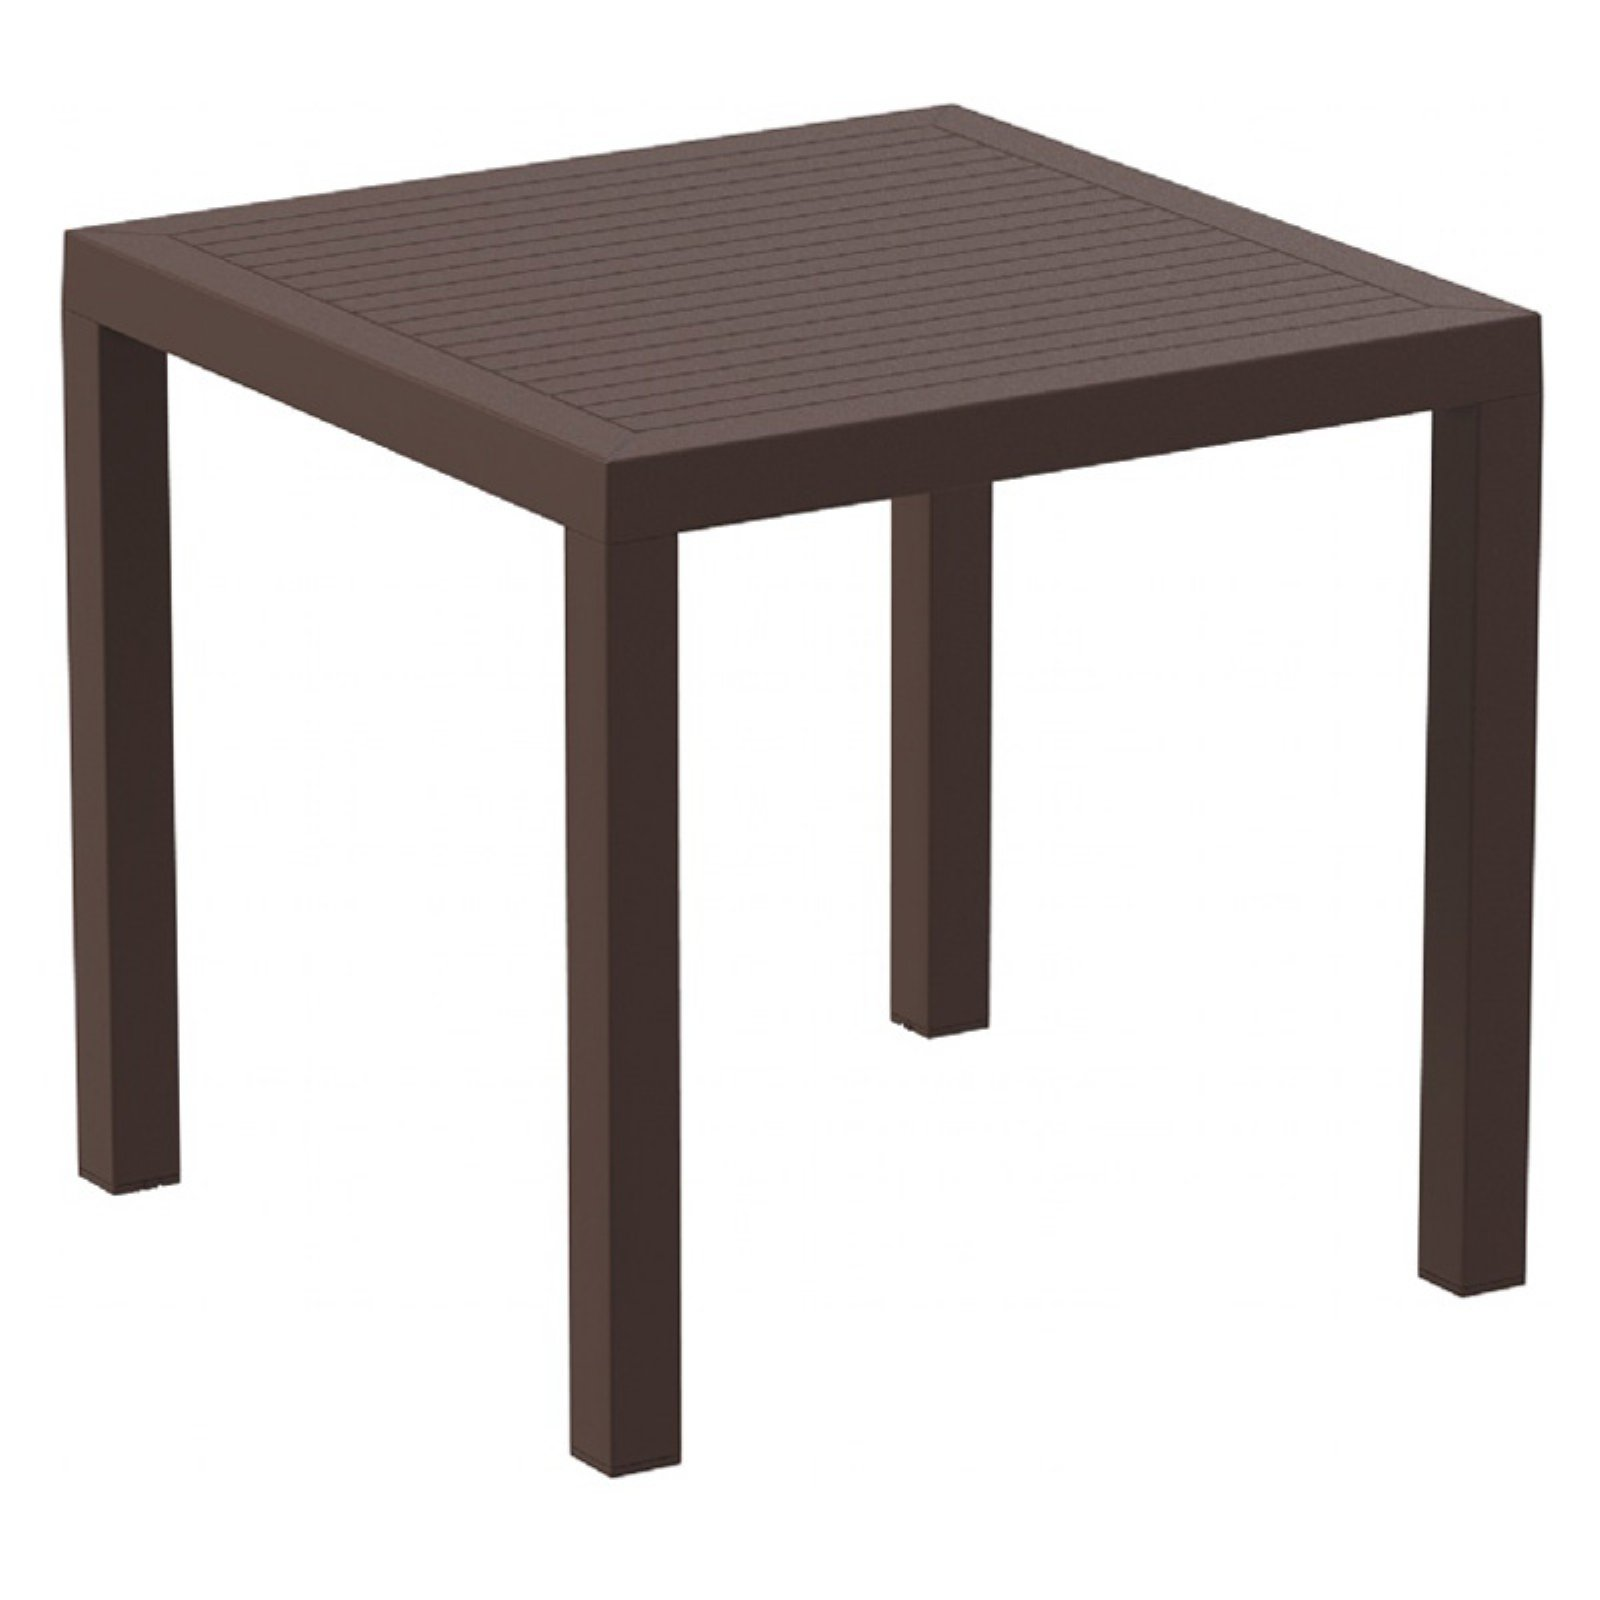 Compamia Ares Resin Square Patio Dining Table